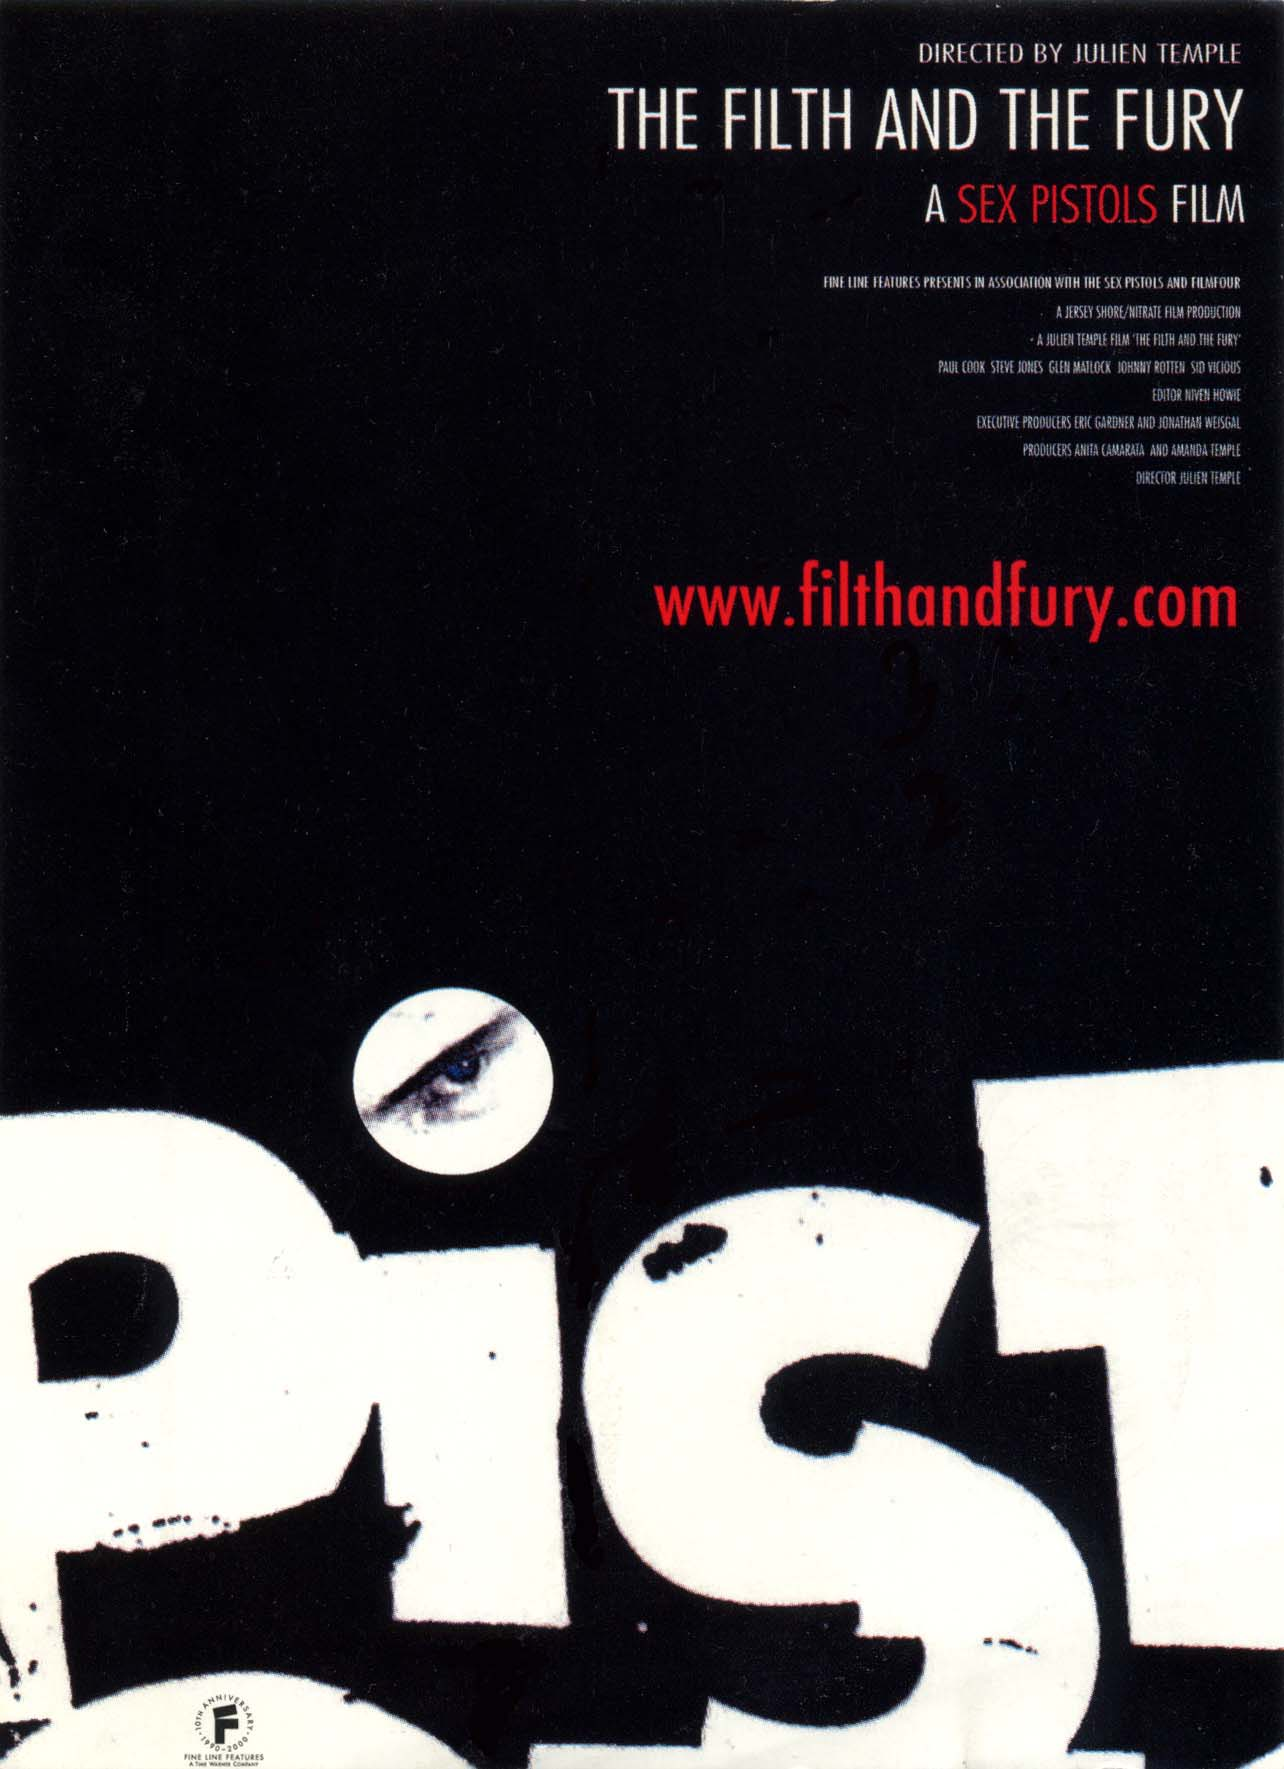 The Filth and the Fury - US Poster 2000